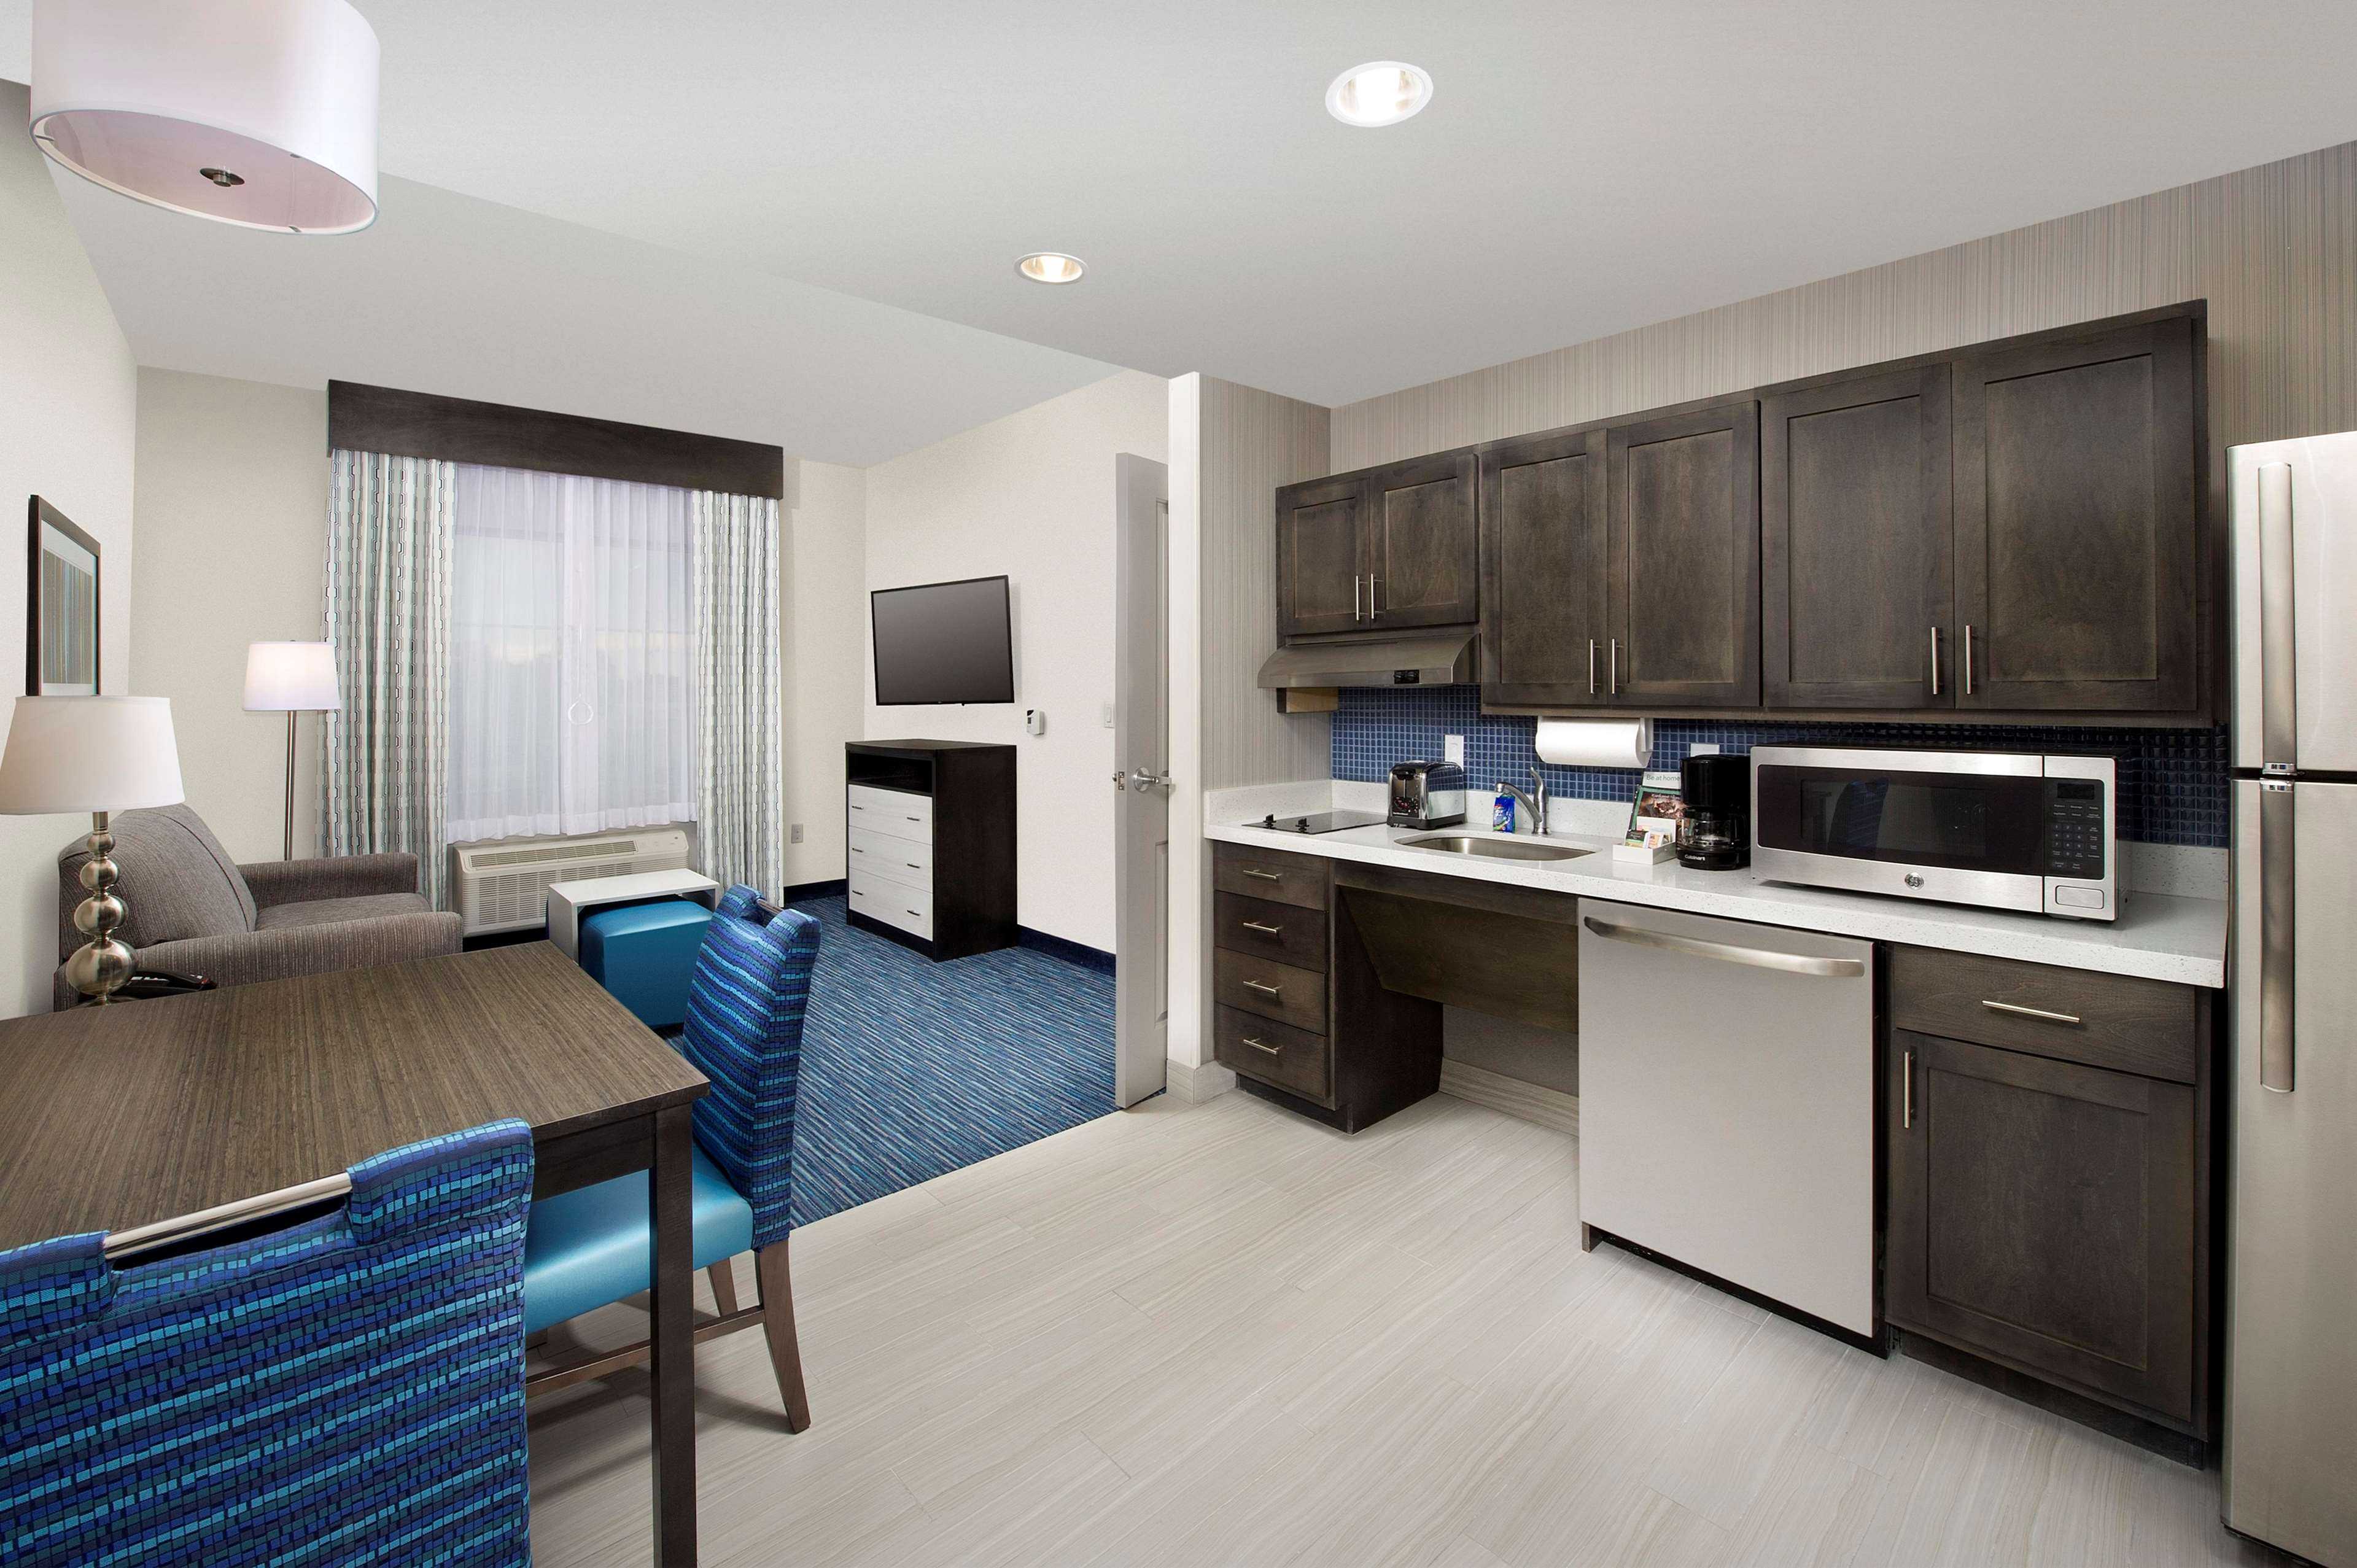 Hotels Near Severn Ave Metairie La